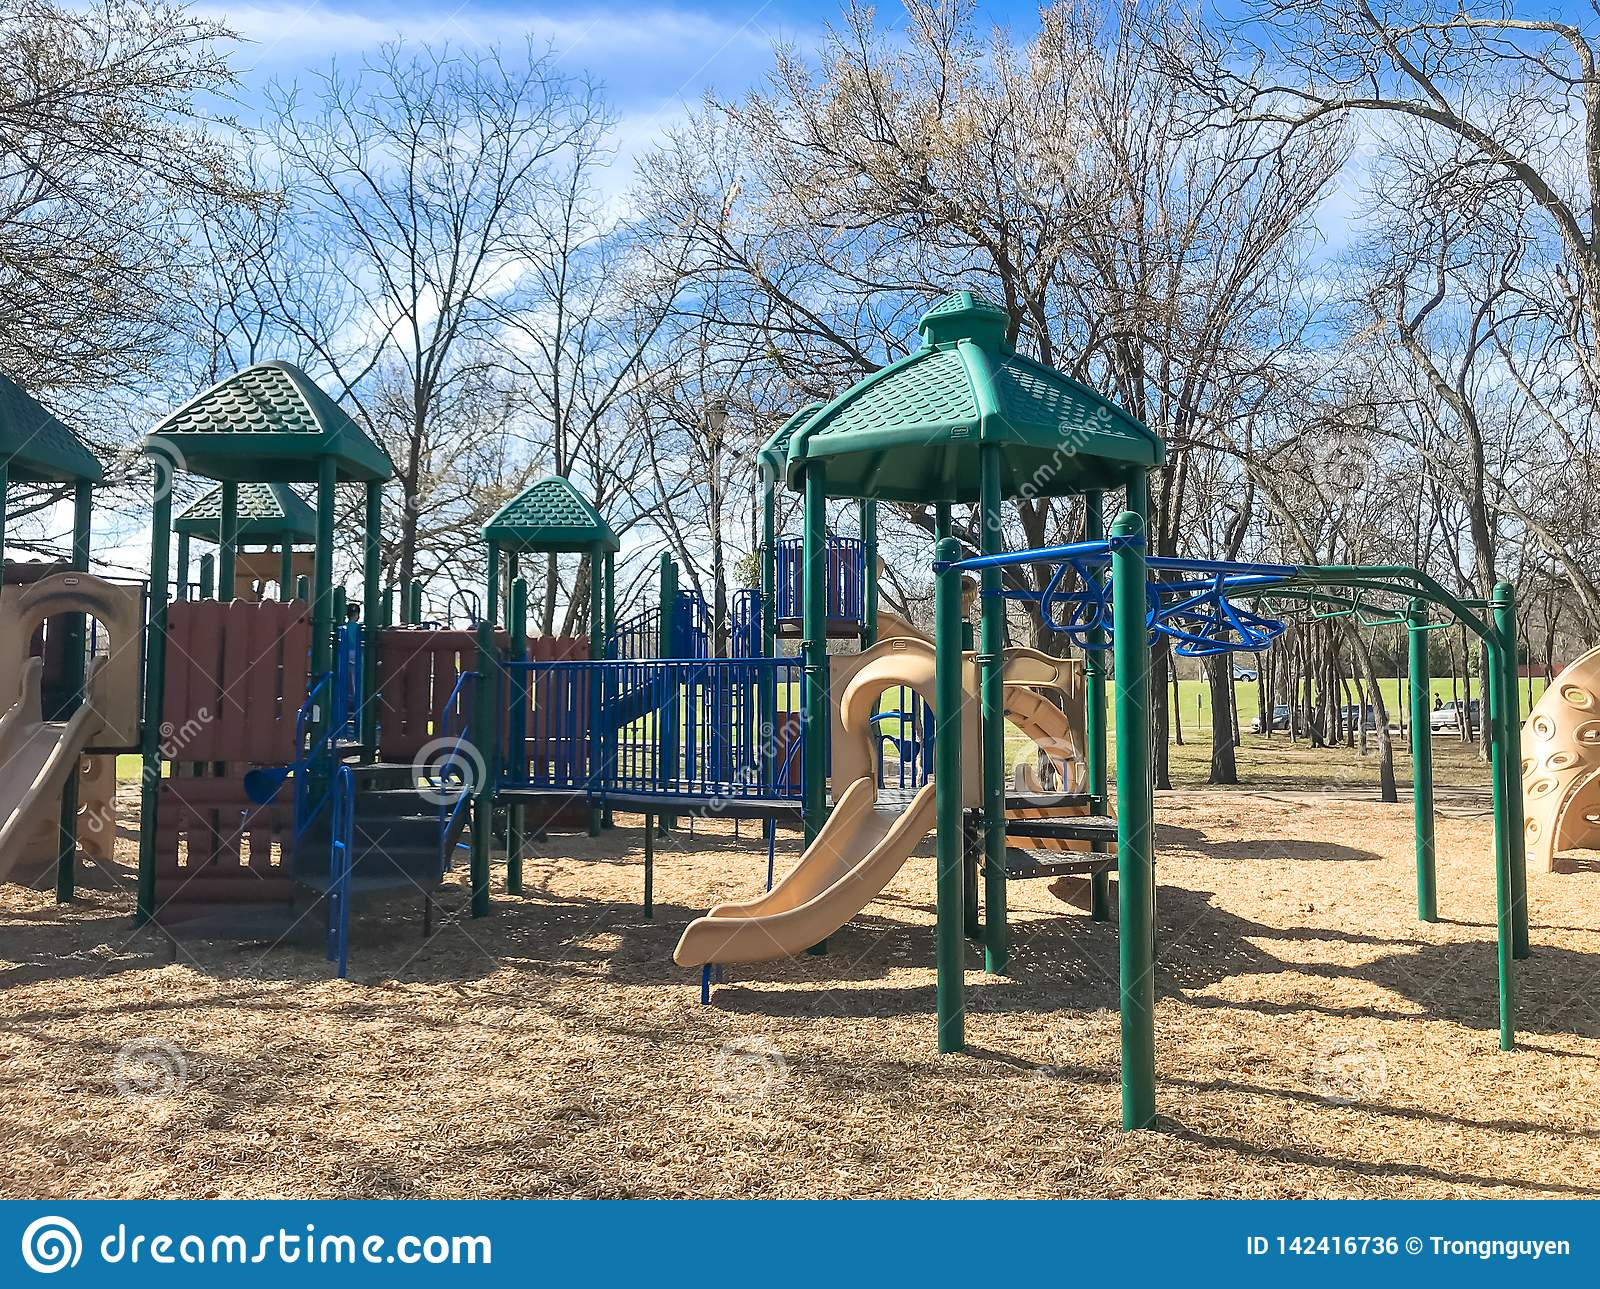 Outdoor playground surrounded by bare trees in wintertime in North Texas, America